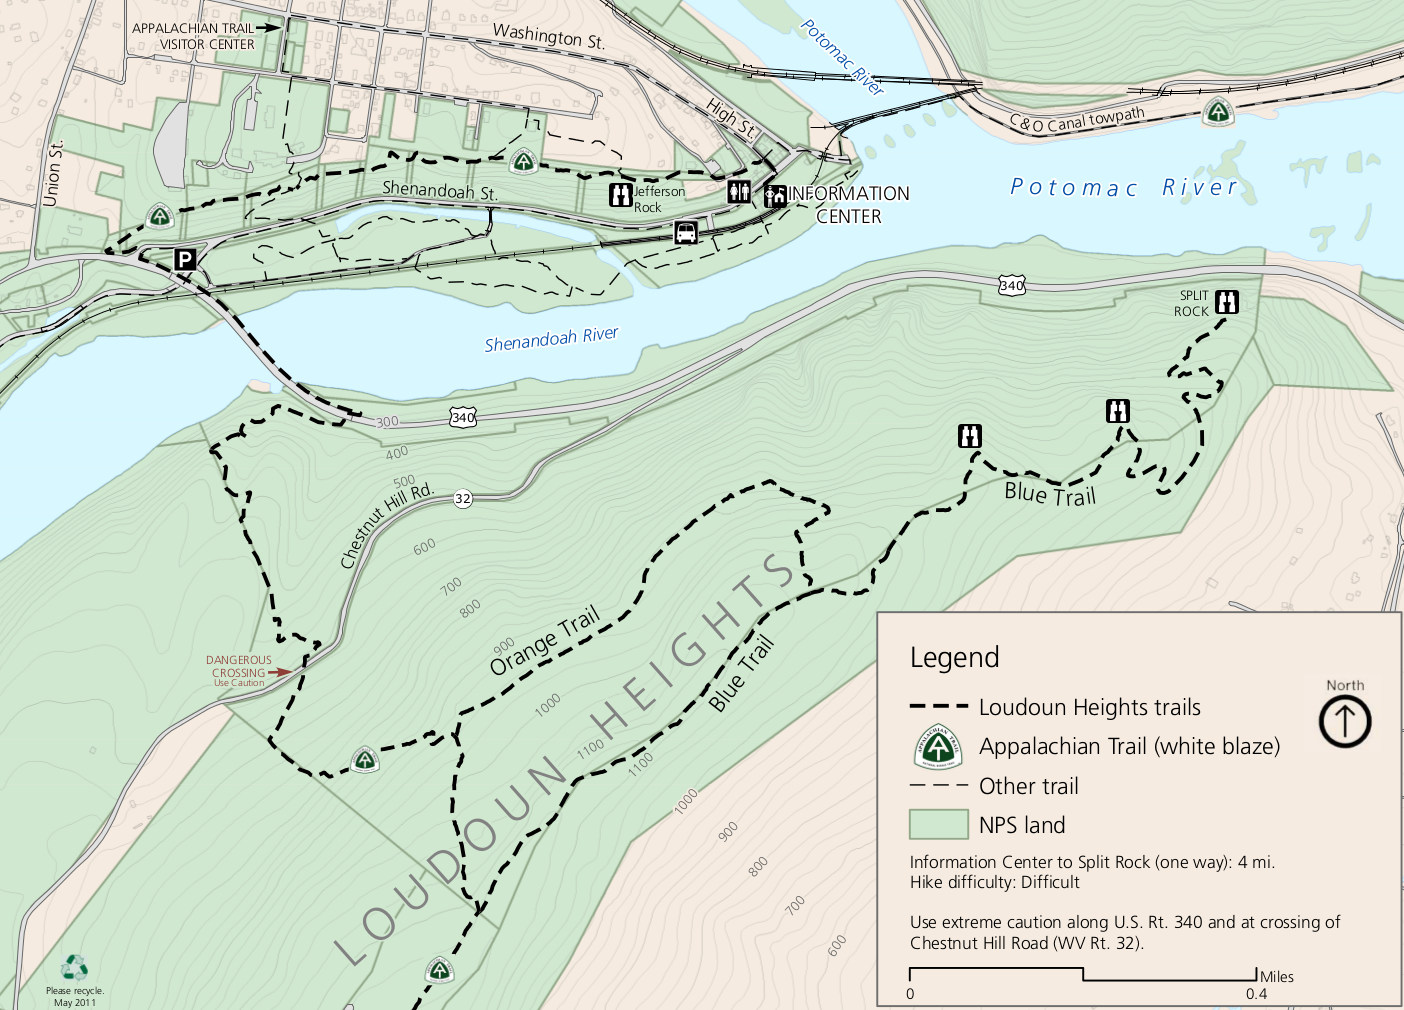 Harpers Ferry Maps | NPMaps.com - just free maps, period.